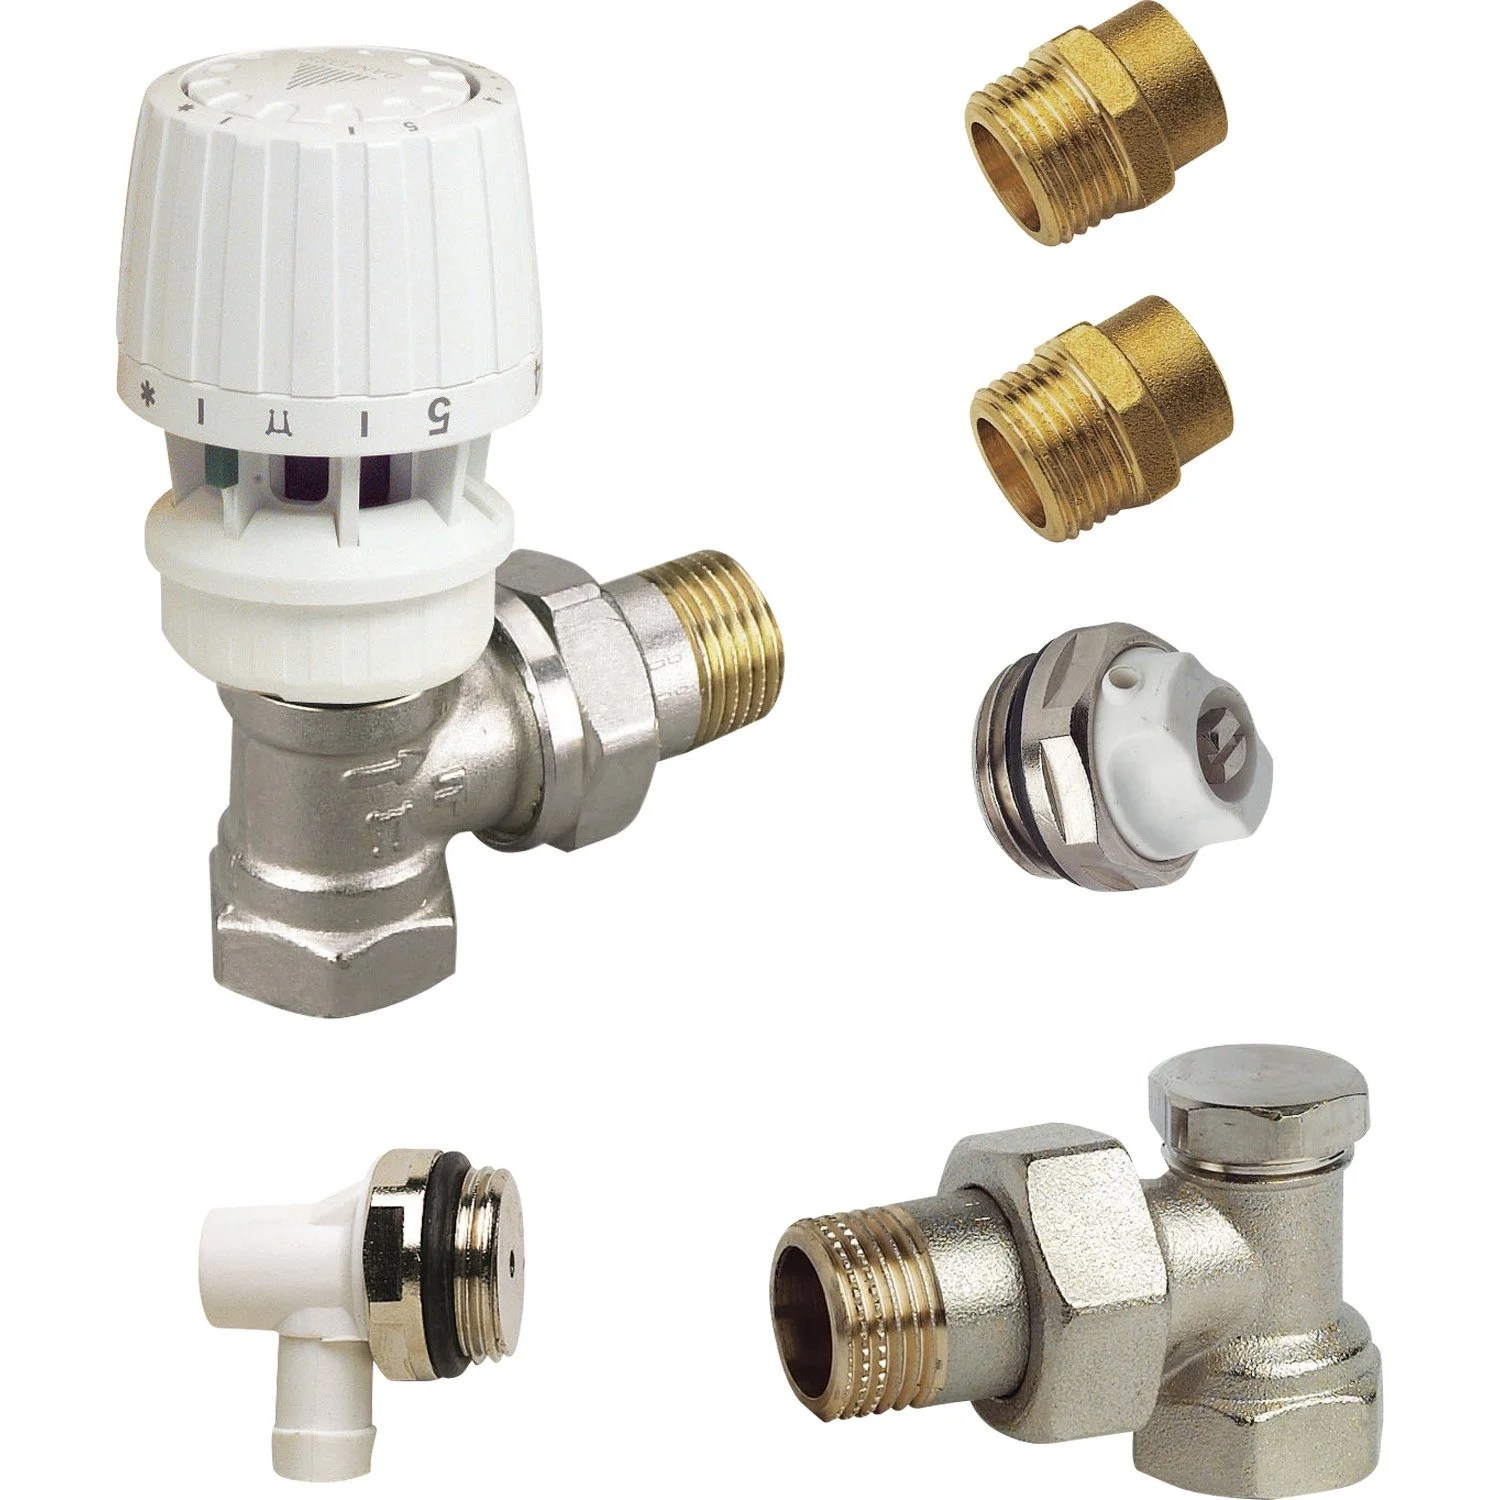 Kit Robinet Thermostatique Equerre 15 21 Male Femelle